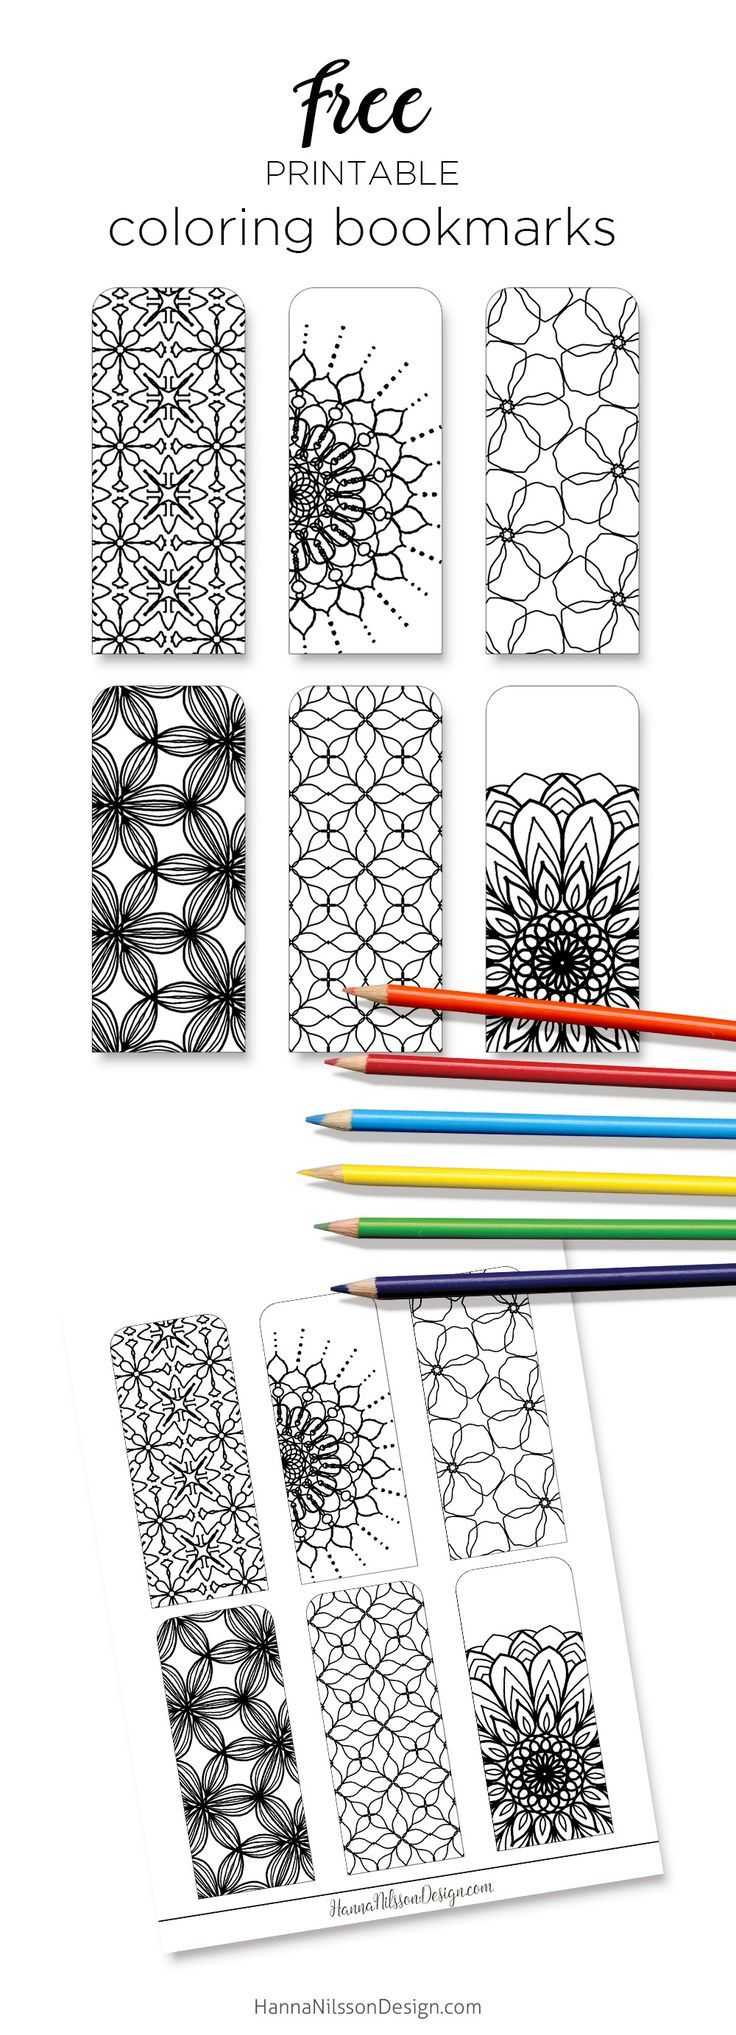 Coloring bookmarks   print, color and read is part of Coloring bookmarks, Bookmark printing, Bookmarks printable, Free printable bookmarks, Bookmarks kids, Coloring pages - In this part of Sweden, we have one week of winter break this week, and it's FANTASTIC! D A full week off from work to spend time together, do fun things, relax and ………  cl…